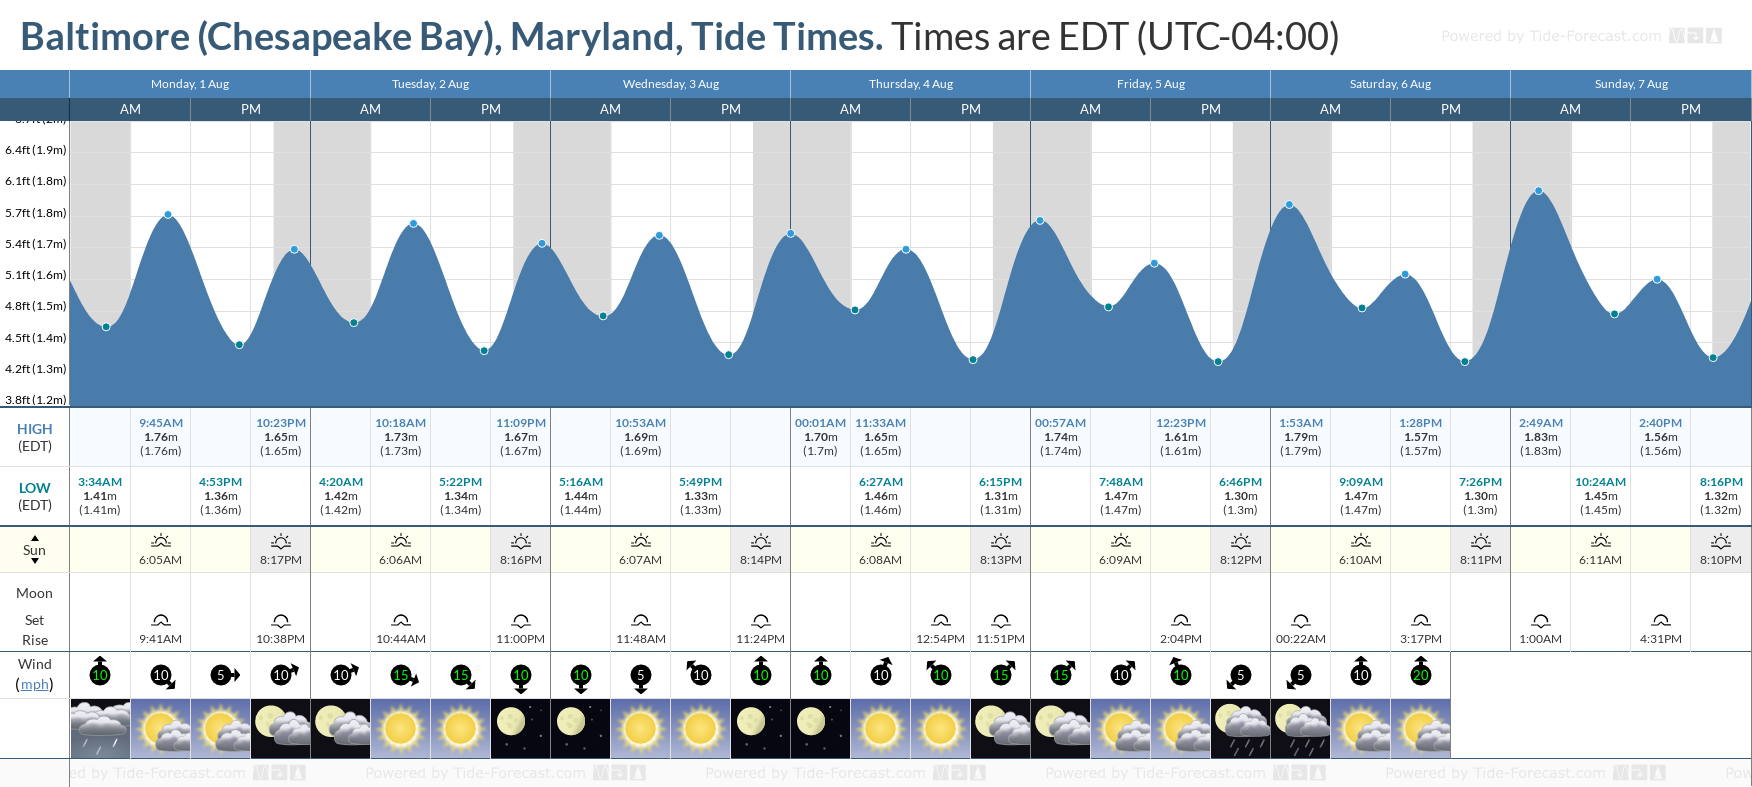 Baltimore (Chesapeake Bay), Maryland Tide Chart including high and low tide tide times for the next 7 days